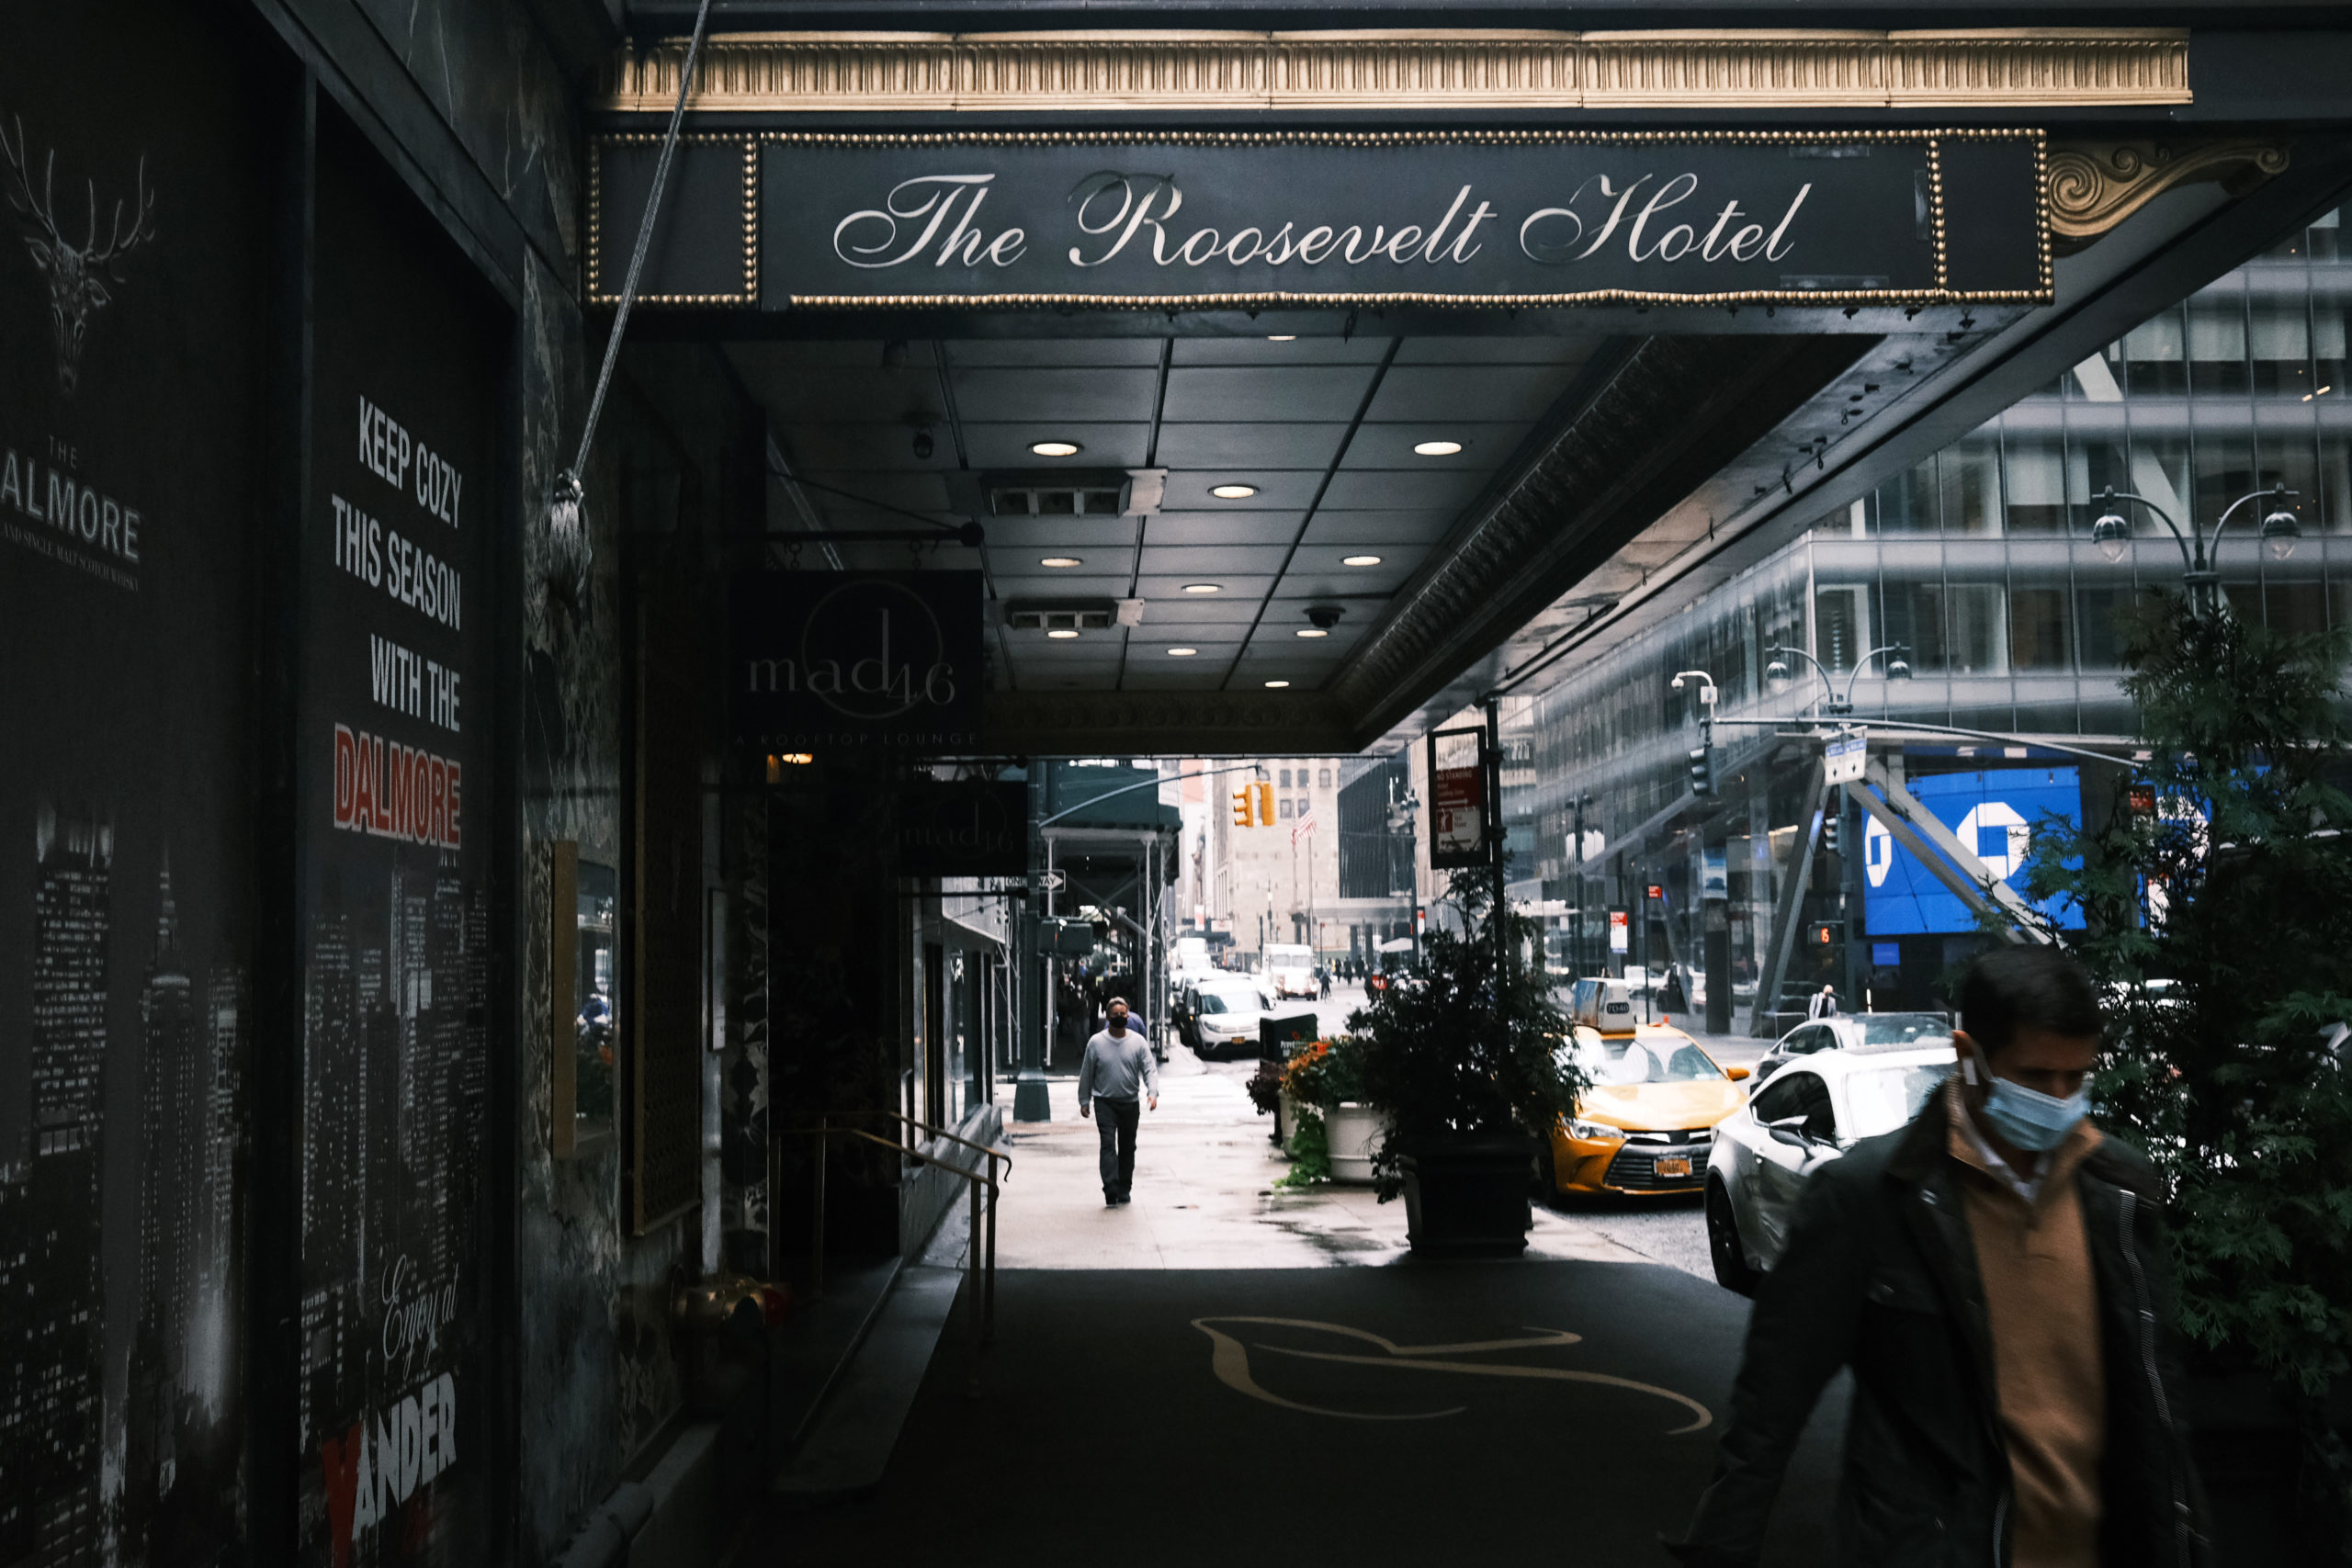 The Roosevelt Hotel, one of New York's oldest and most storied hotels, announced on Oct. 13 that it will be closing due to a plunge in tourism as a result of the coronavirus pandemic. (Spencer Platt/Getty Images)